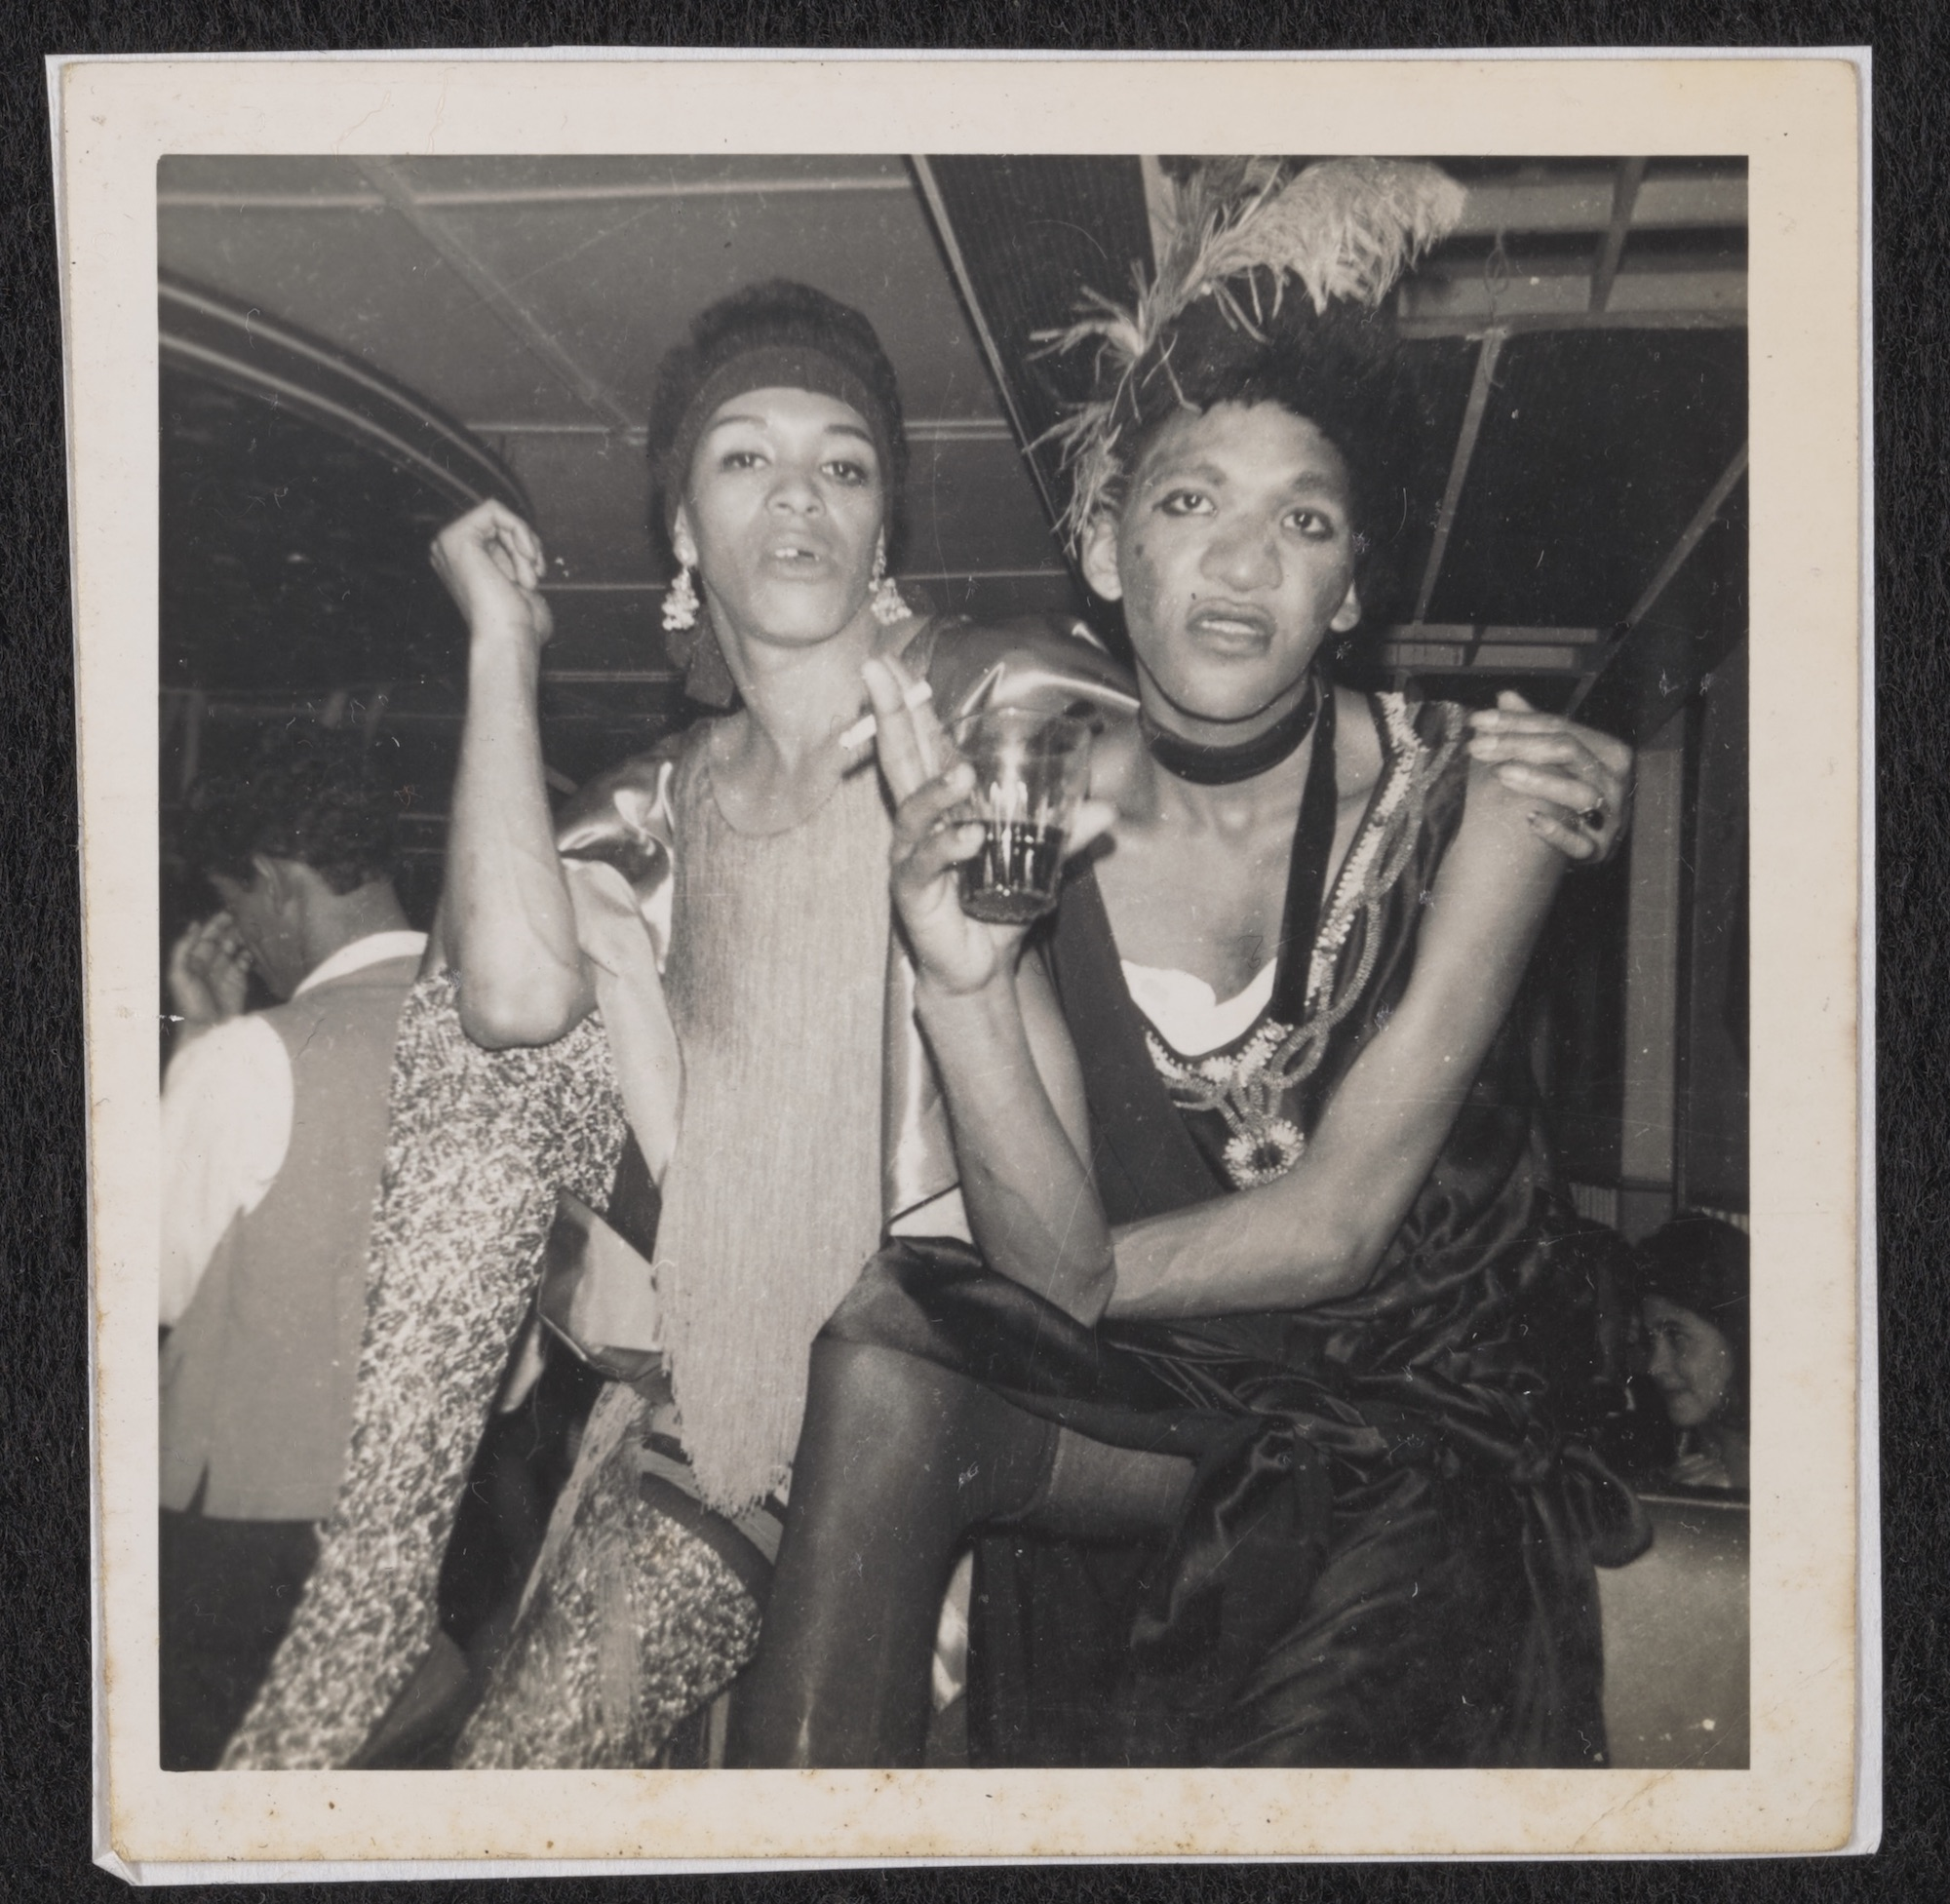 Mitzy and Bassey at the Roaring '20s Night at the Ambassador Club, circa 1950 to 1985